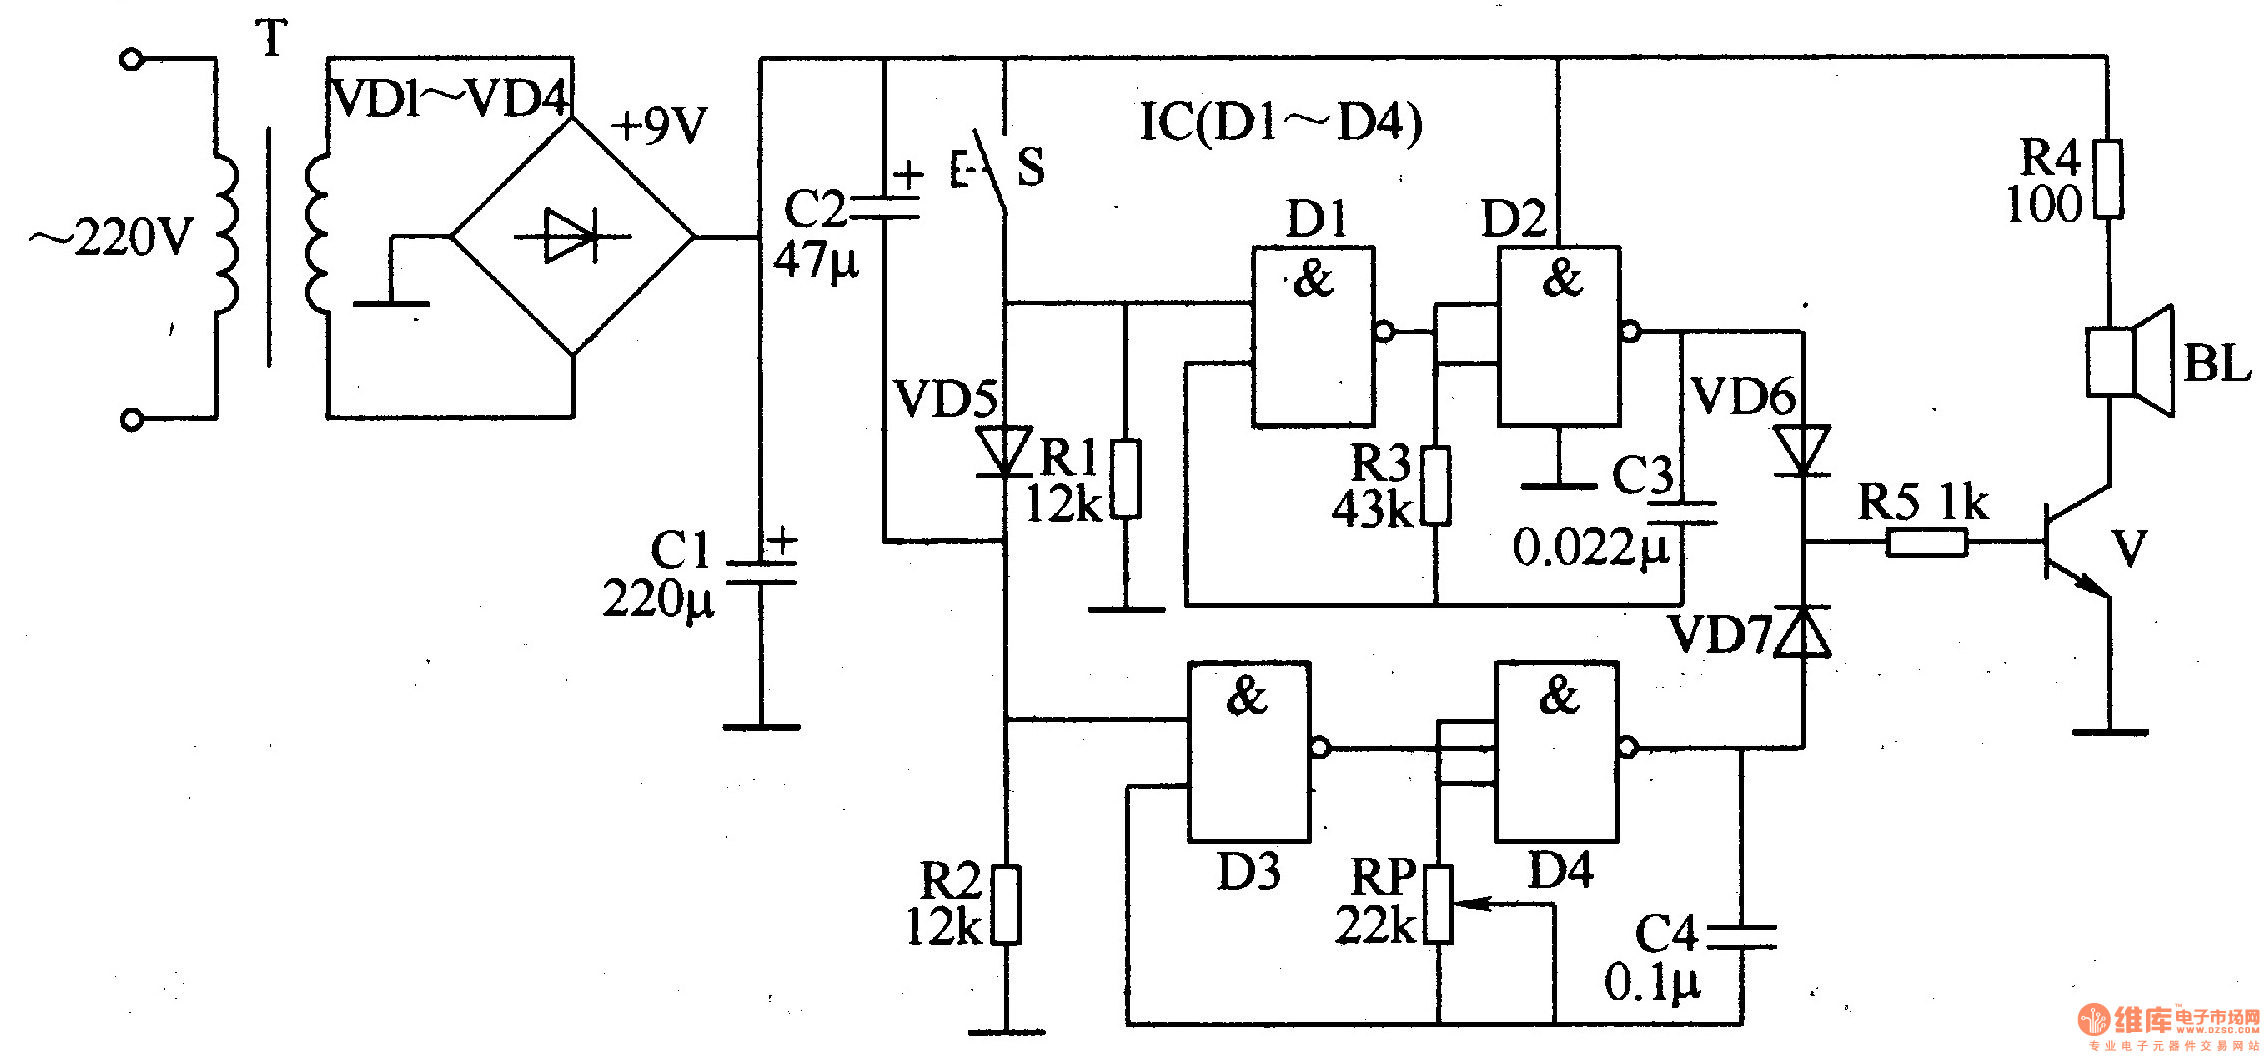 ding-dong electronic doorbell - electrical equipment circuit - circuit diagram